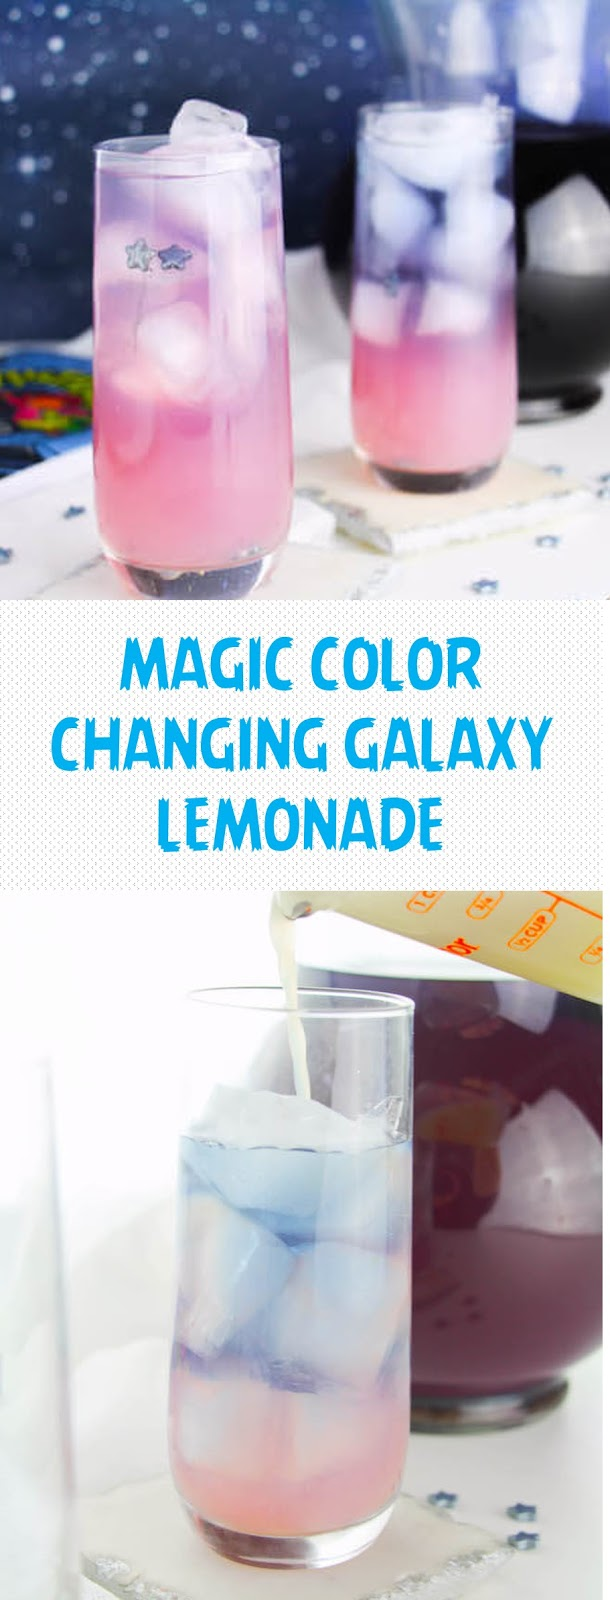 MAGIC COLOR-CHANGING GALAXY LEMONADE